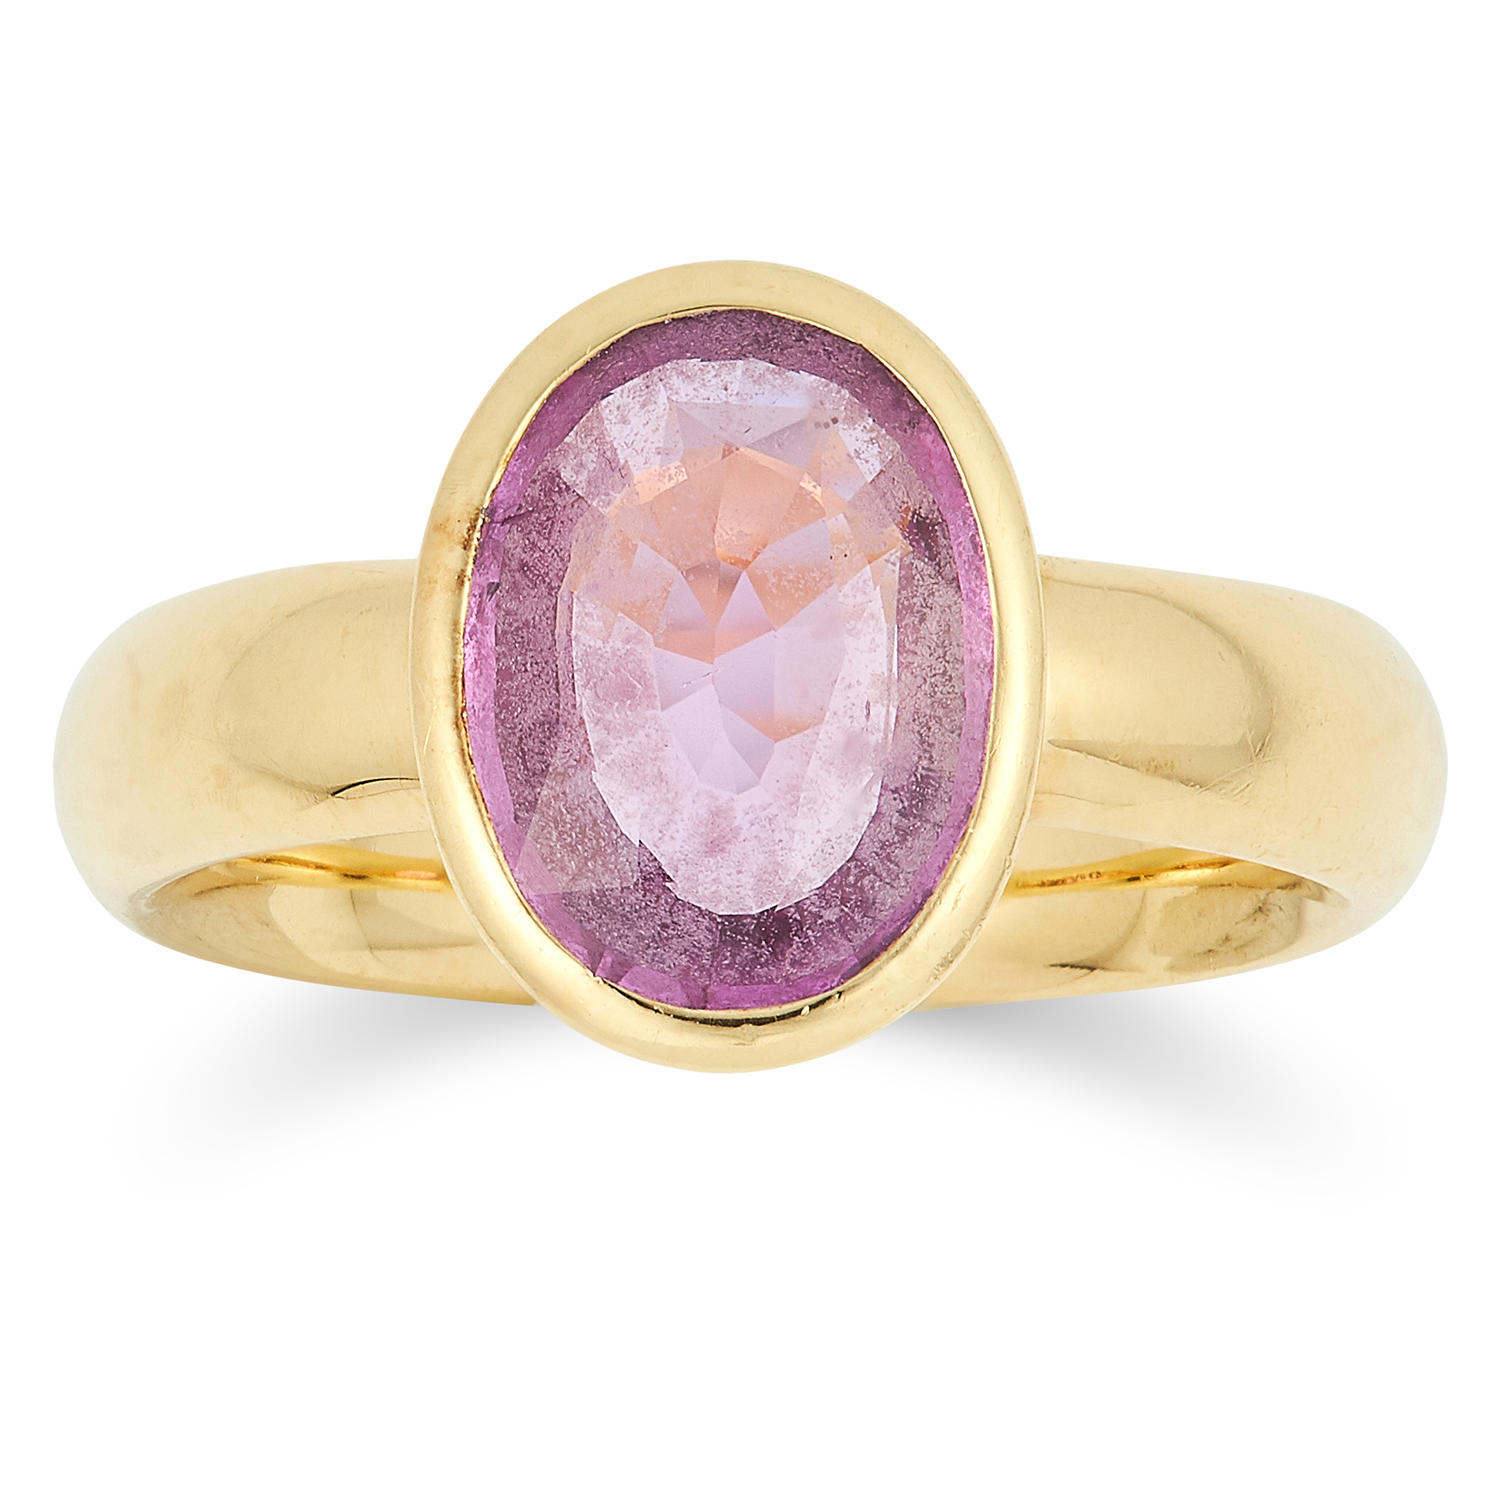 PINK SAPPHIRE RING set with an oval cut pink sapphire, on later George Jensen band, size L / 5.5,